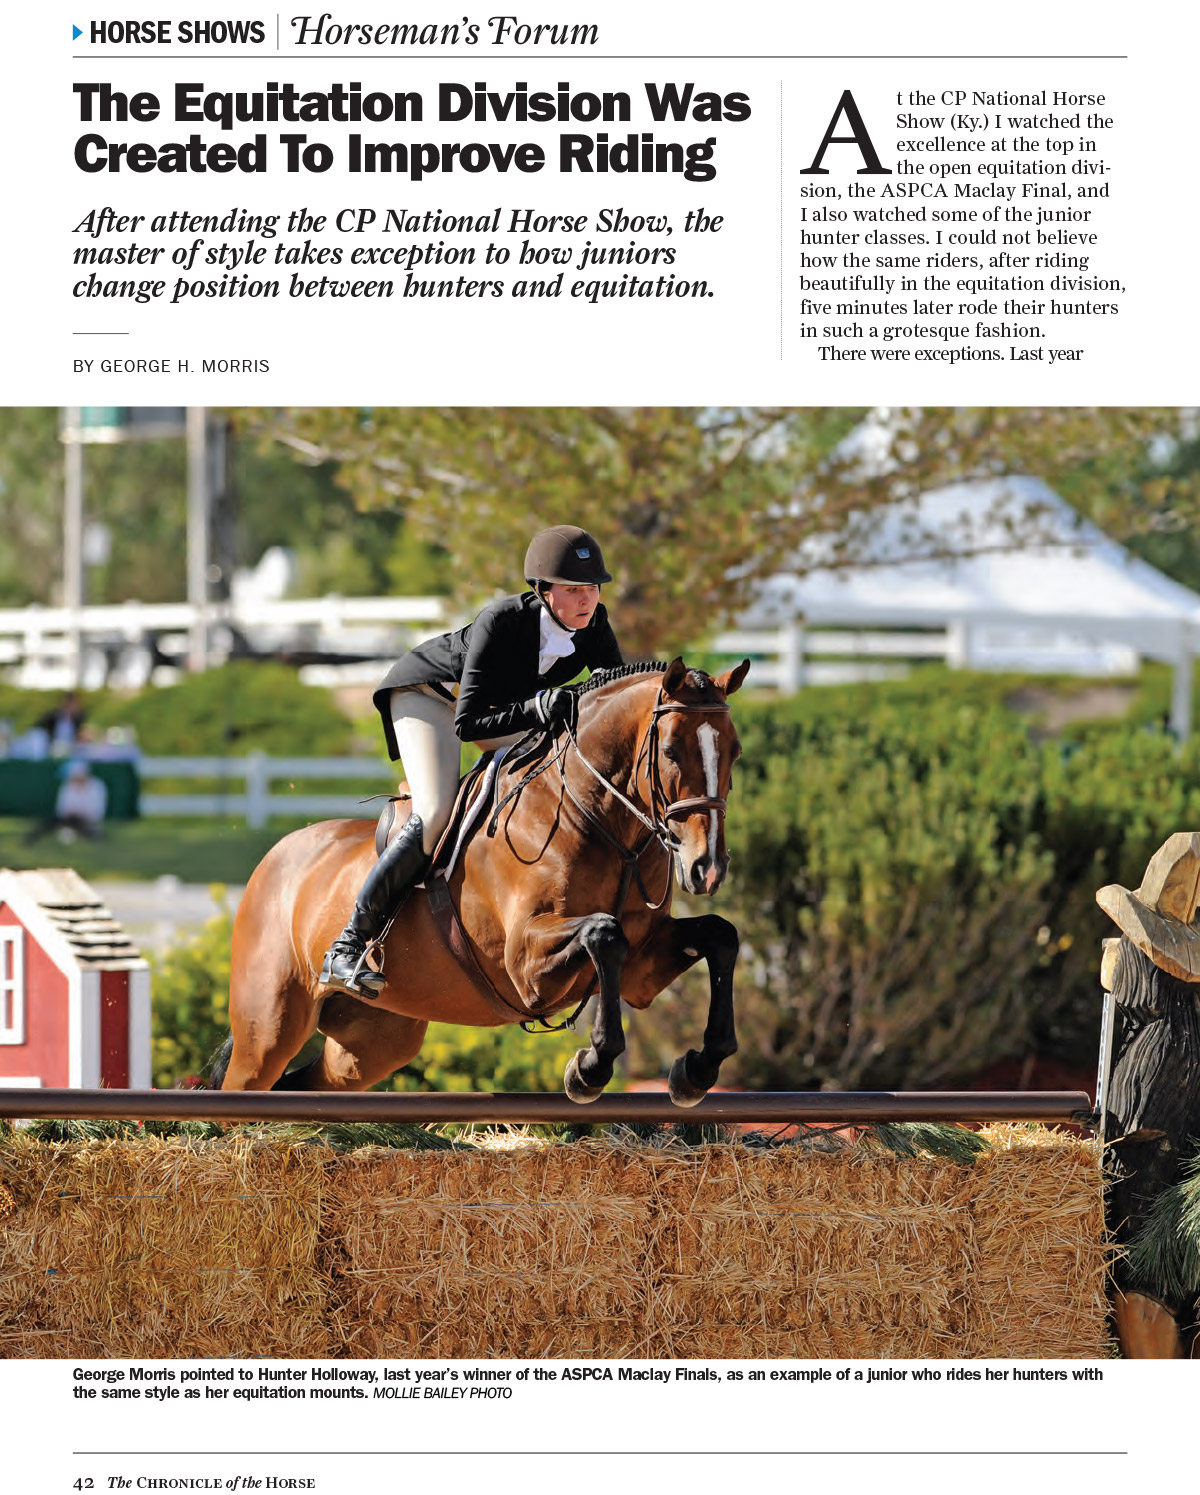 The Chronicle of the Horse - Equitation Article by George Morris